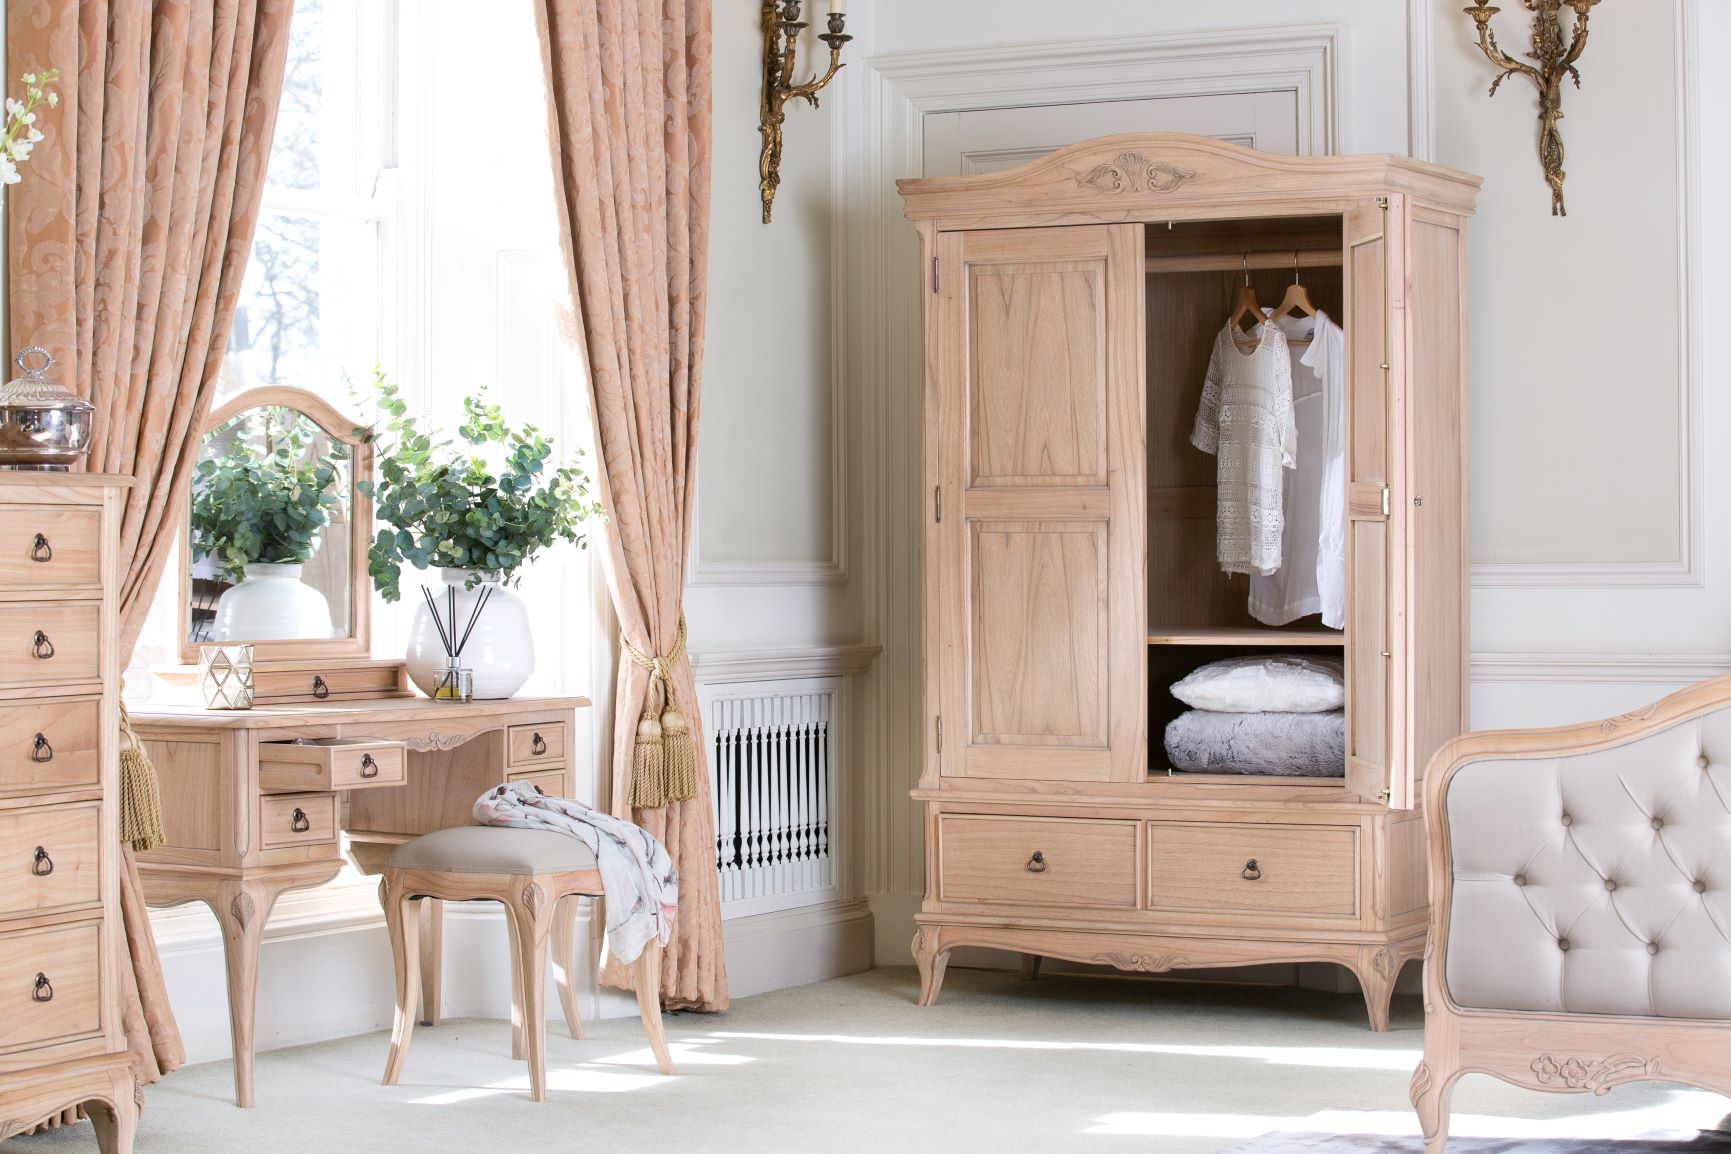 DRESSING TABLE WITH GALLERY MIRROR AND WARDROBE